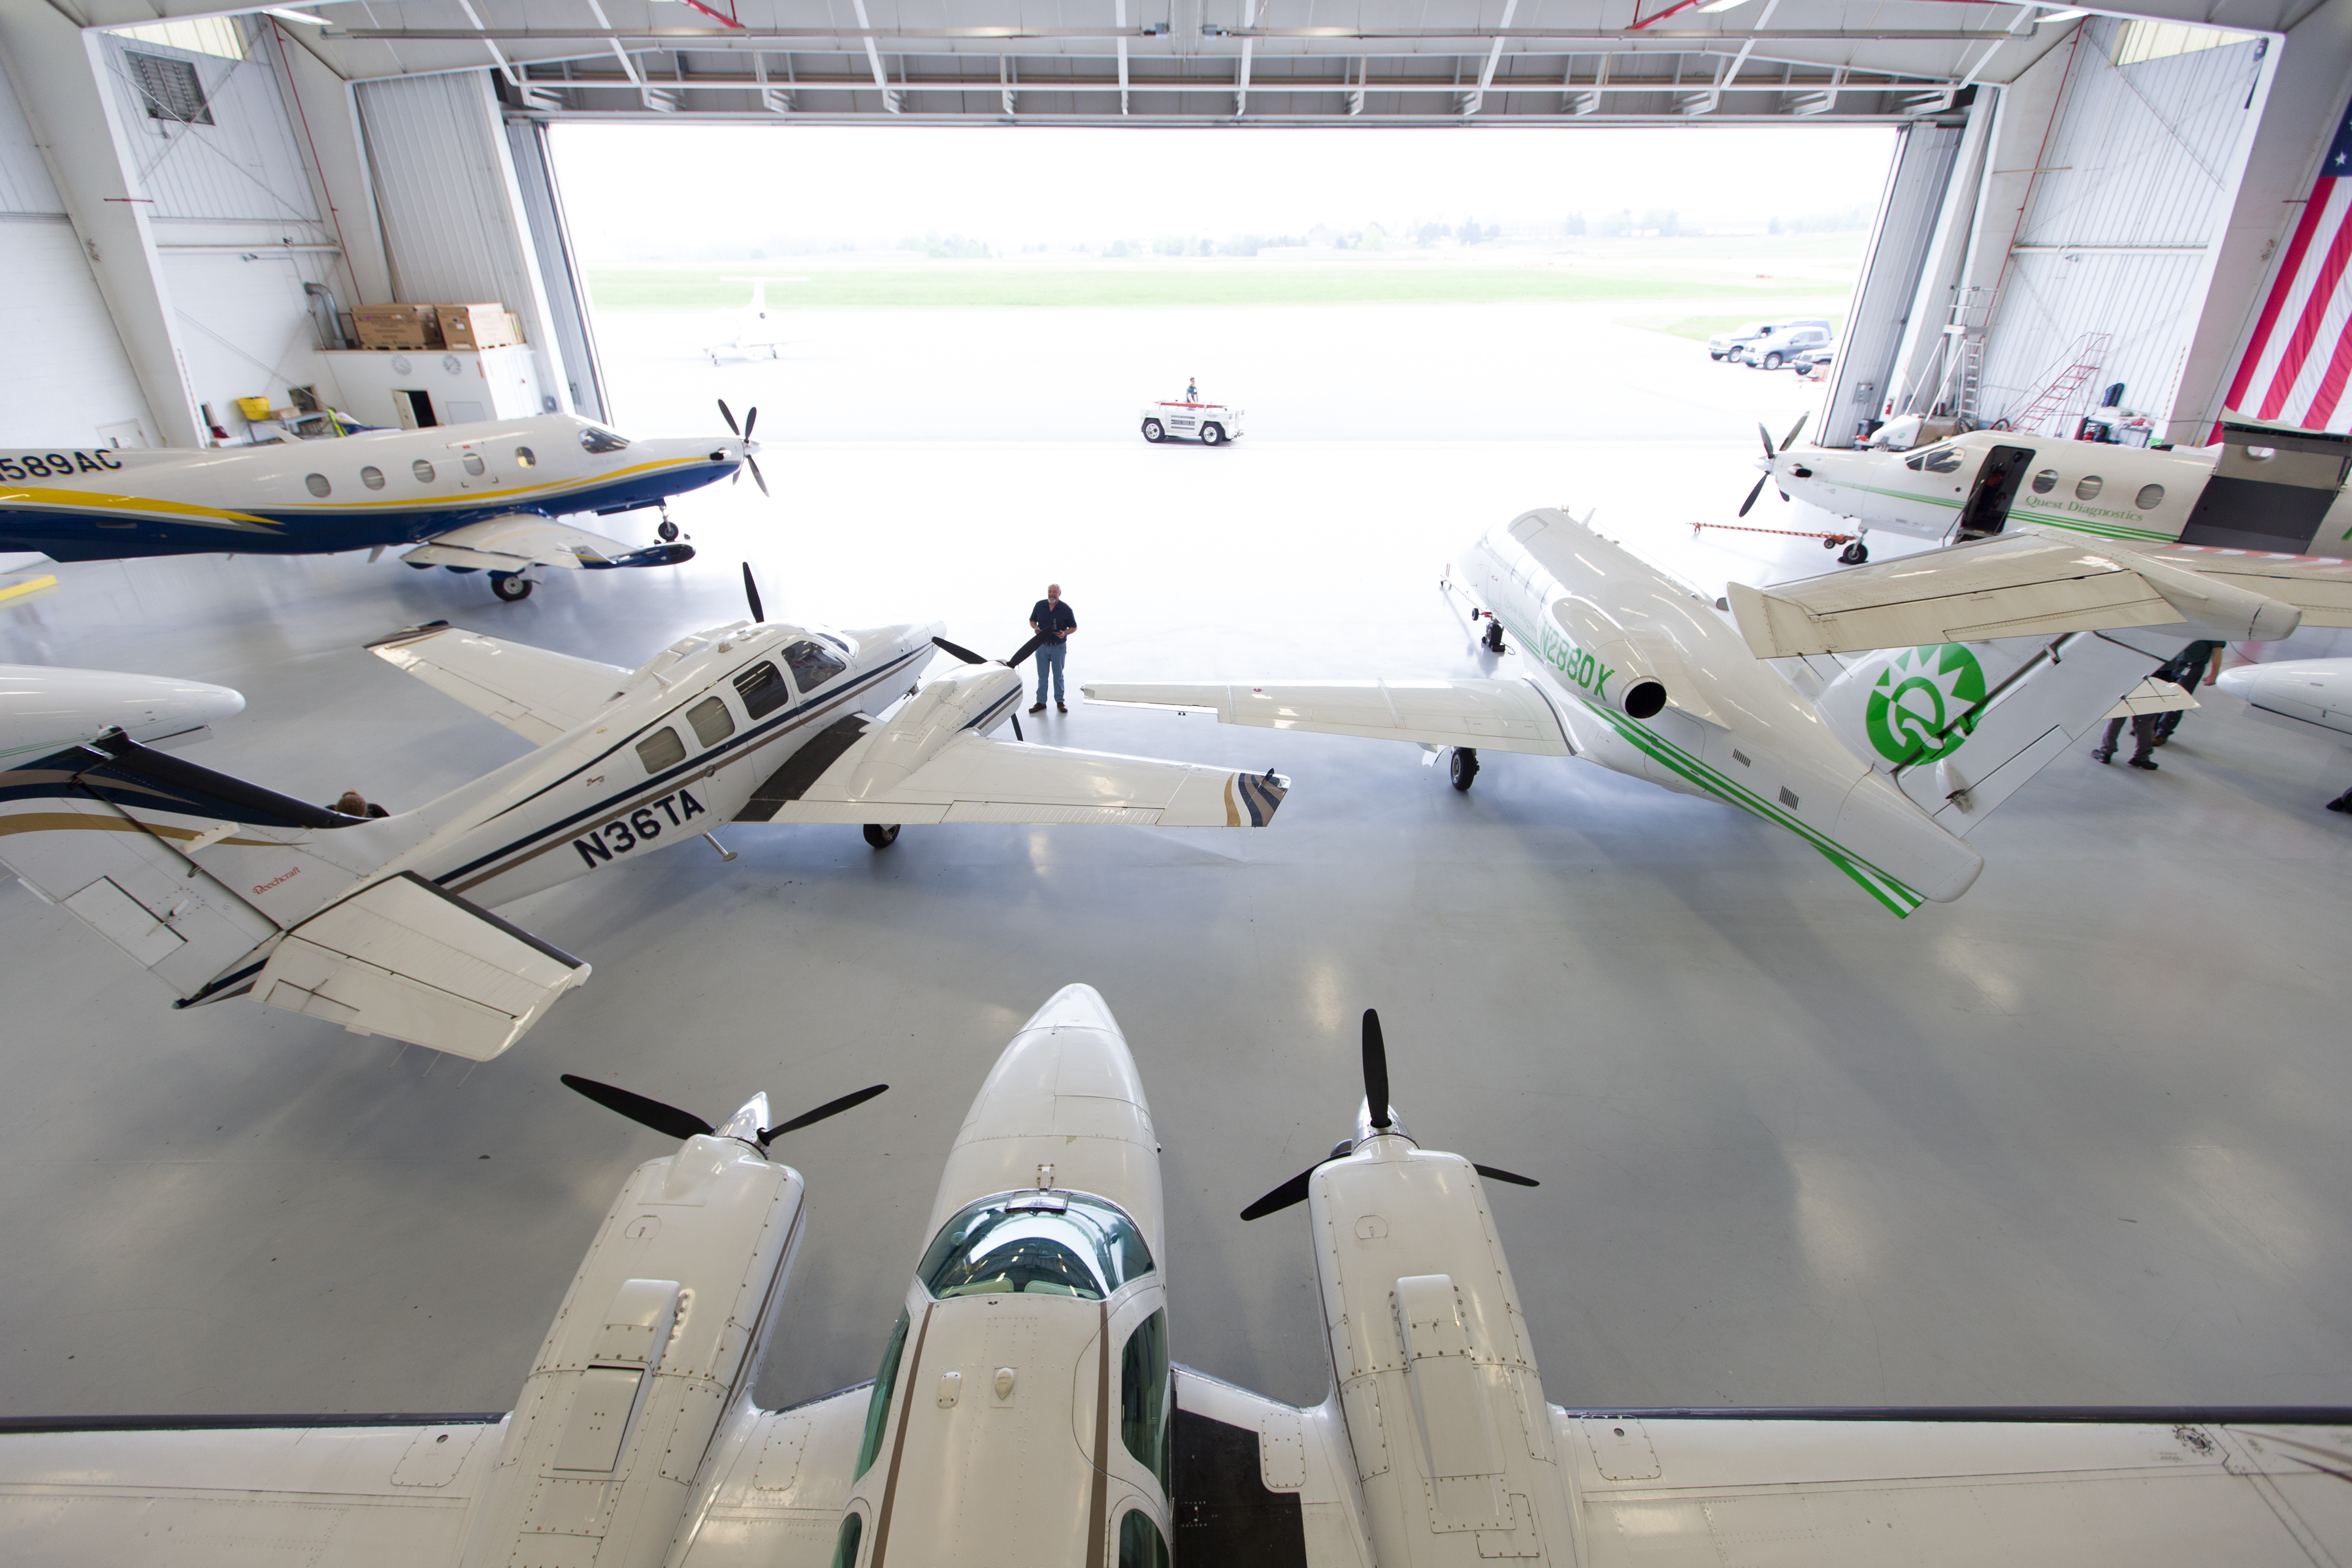 All three airplane types currently flown by Quest Diagnostics awaiting a night's work in the hangar. PC-12s sit forward at left and right by the door. Beech Barons are in the foreground at left and center. An Embraer Phenom 100 is in the foreground on the right.